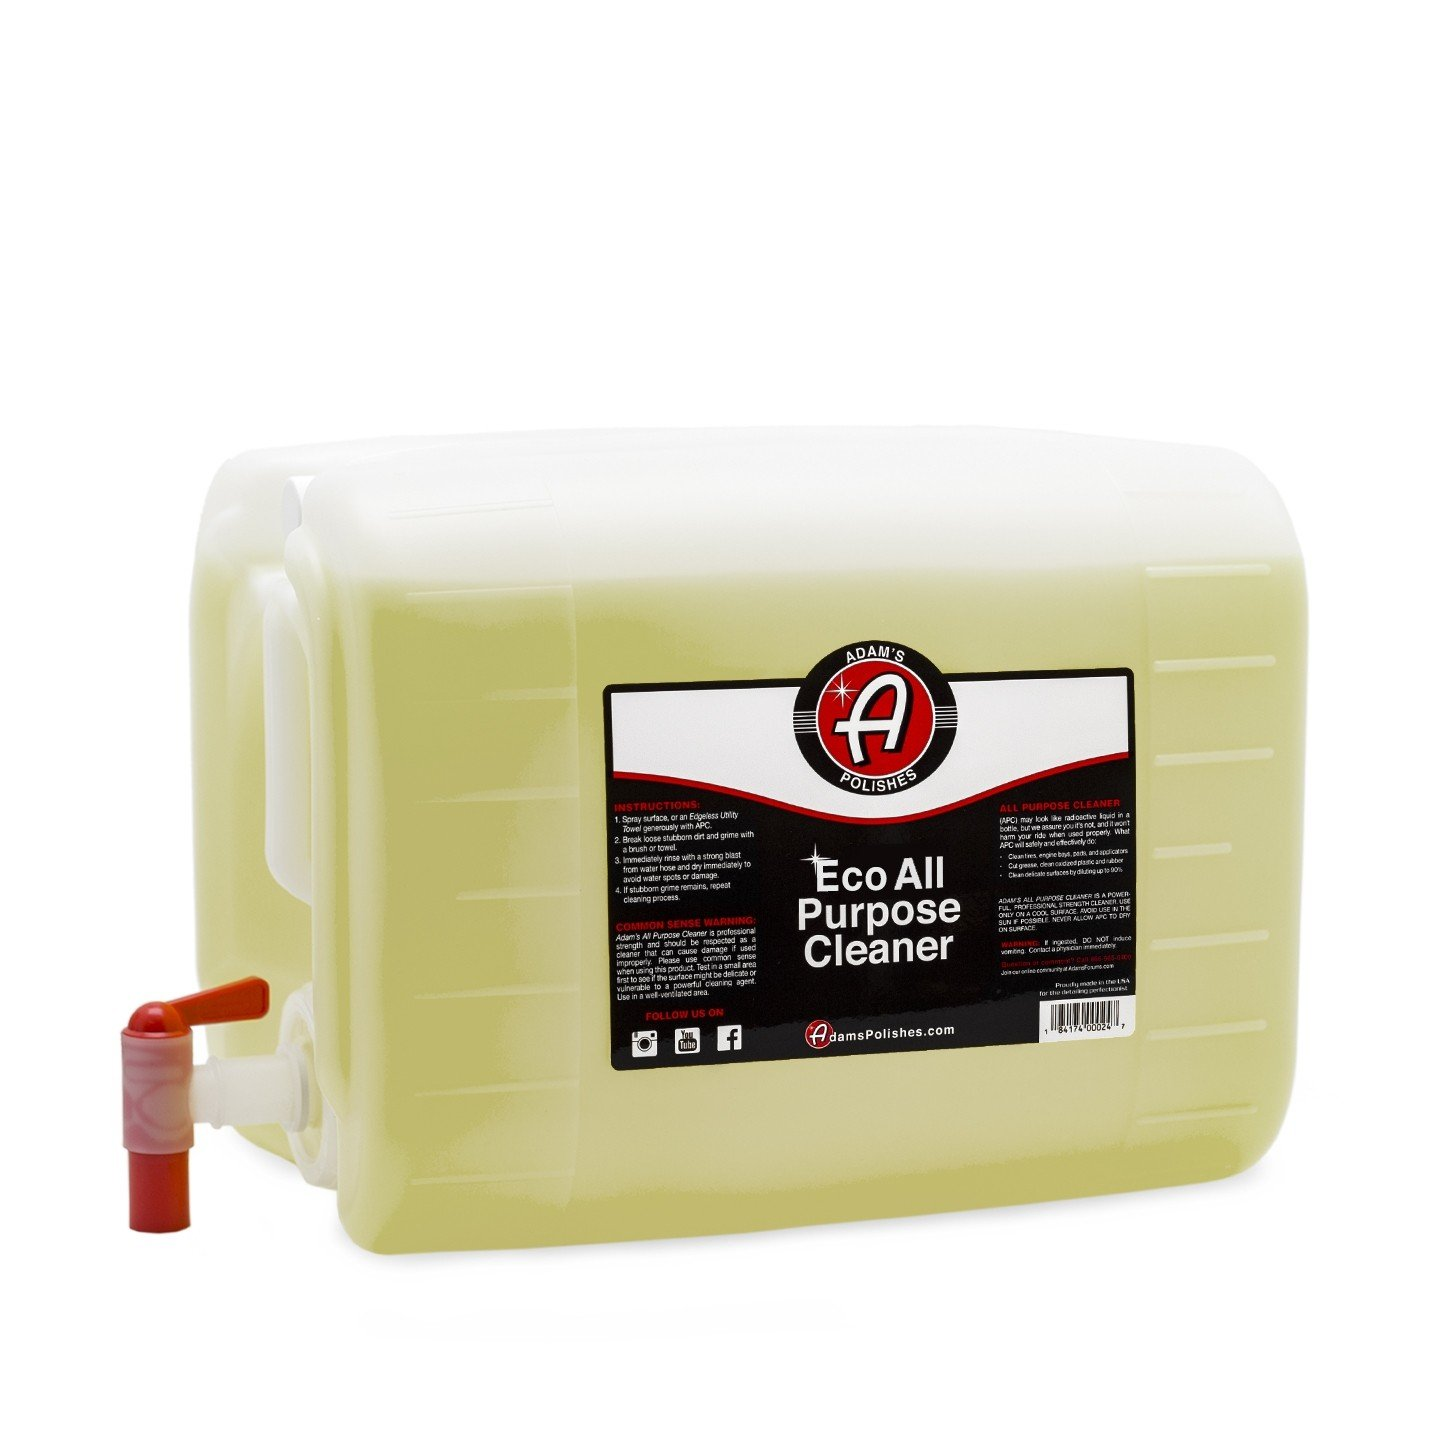 Adam's ECO All Purpose Cleaner - Industrial Strength, Concentrated Formula Can be Diluted Down - Tough on Dirt but Easy on Your Car, You, and The Environment (16 oz) Adam' s Polishes D015